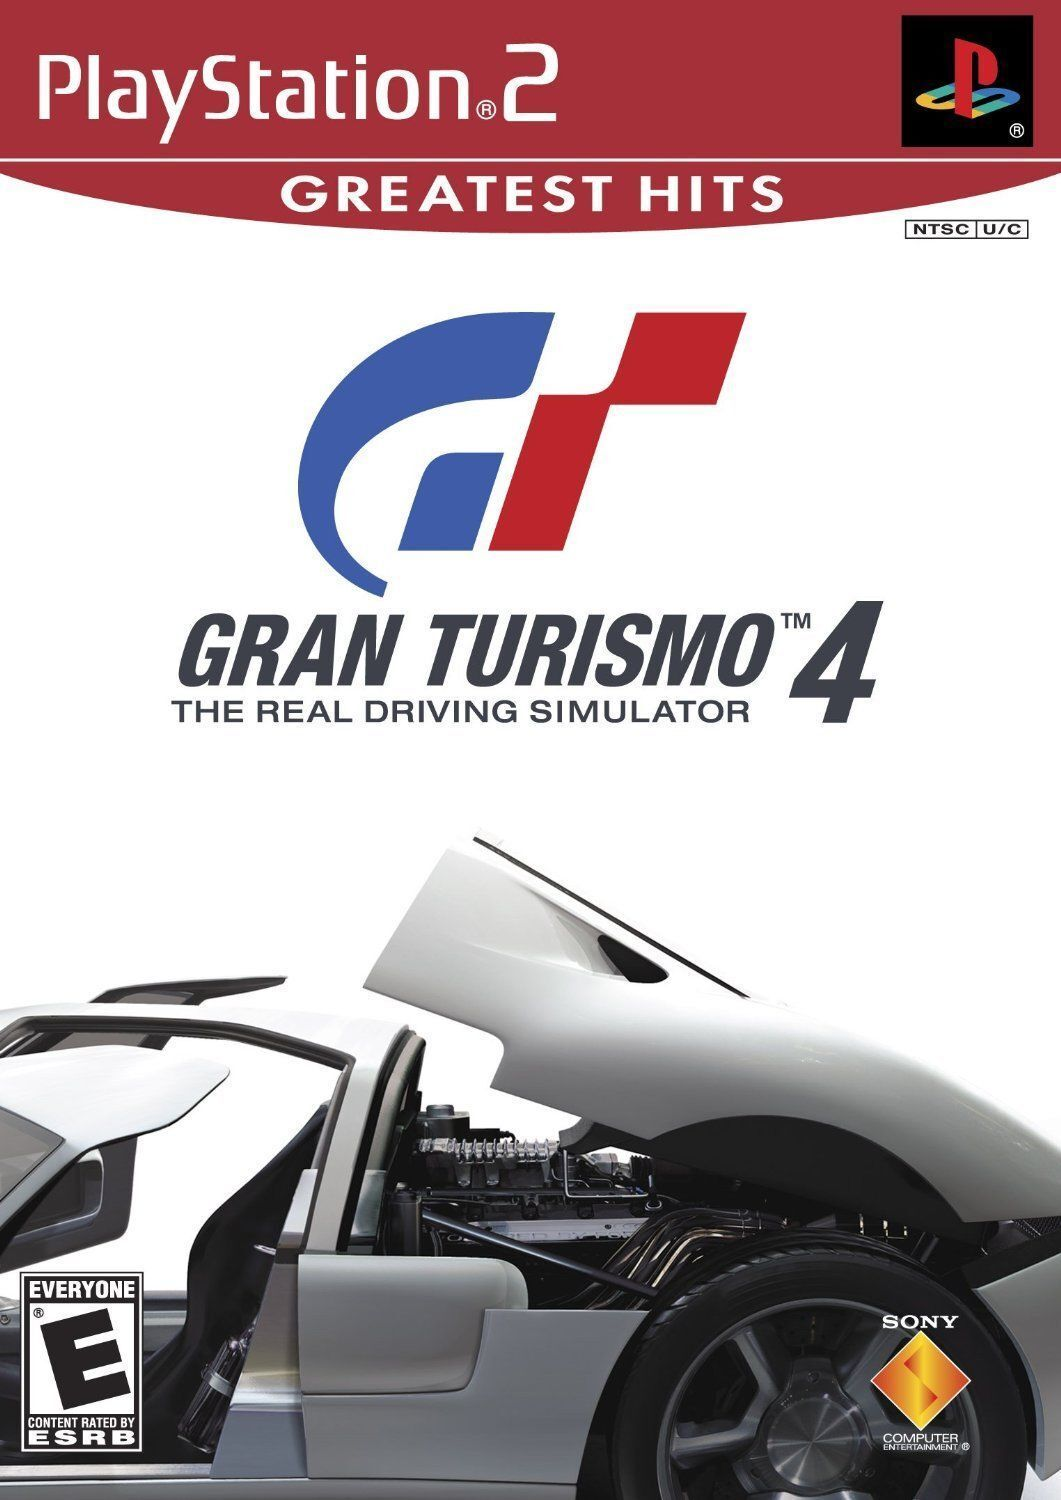 The 4th in the gt series and 2nd for ps2 sony s gran turismo 4 hit the market in december 2004 and boasts an impressive 700 cars and 100 courses in game